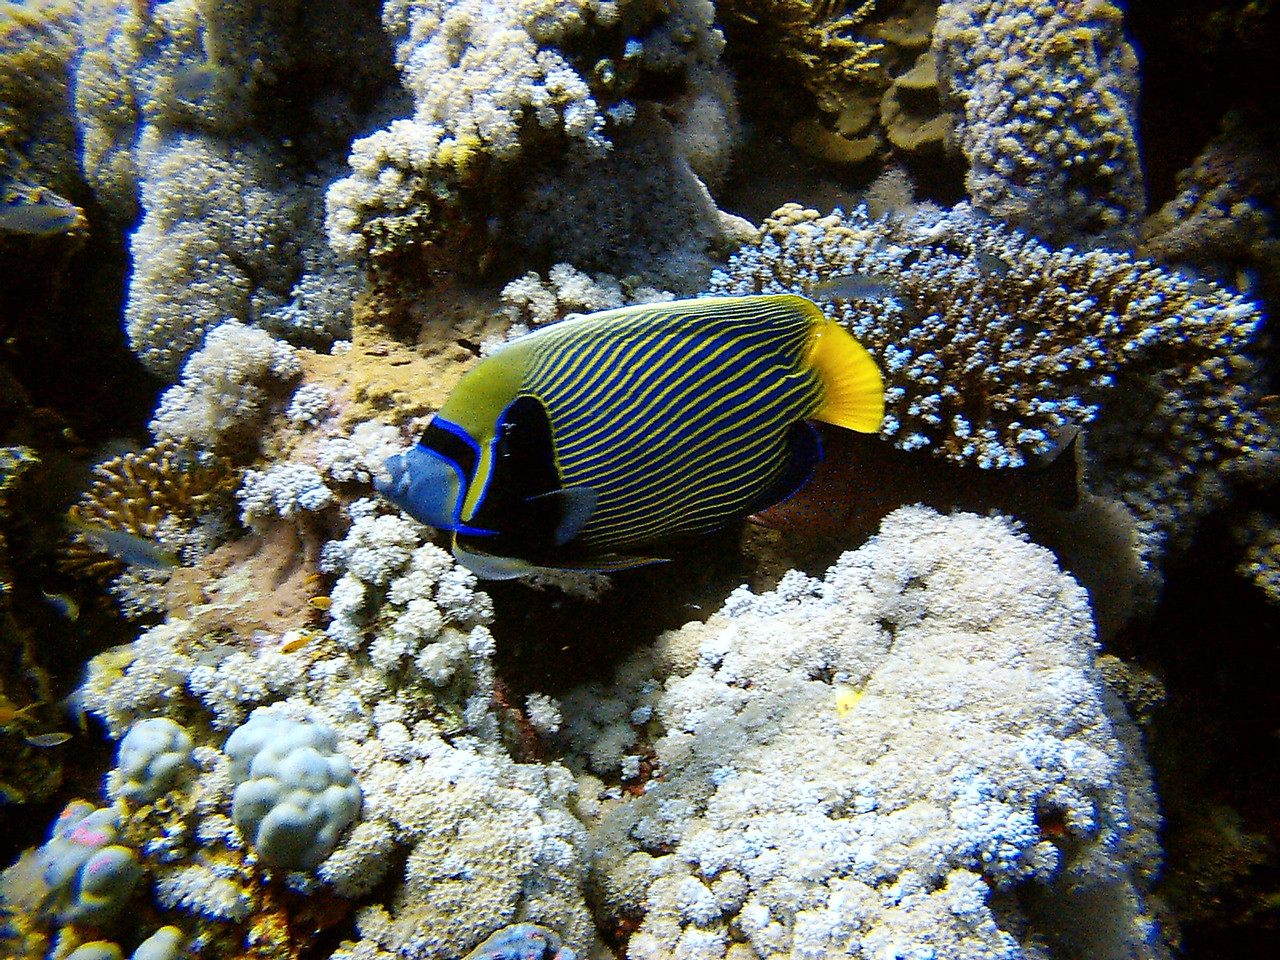 w) An Emperor Angelfish